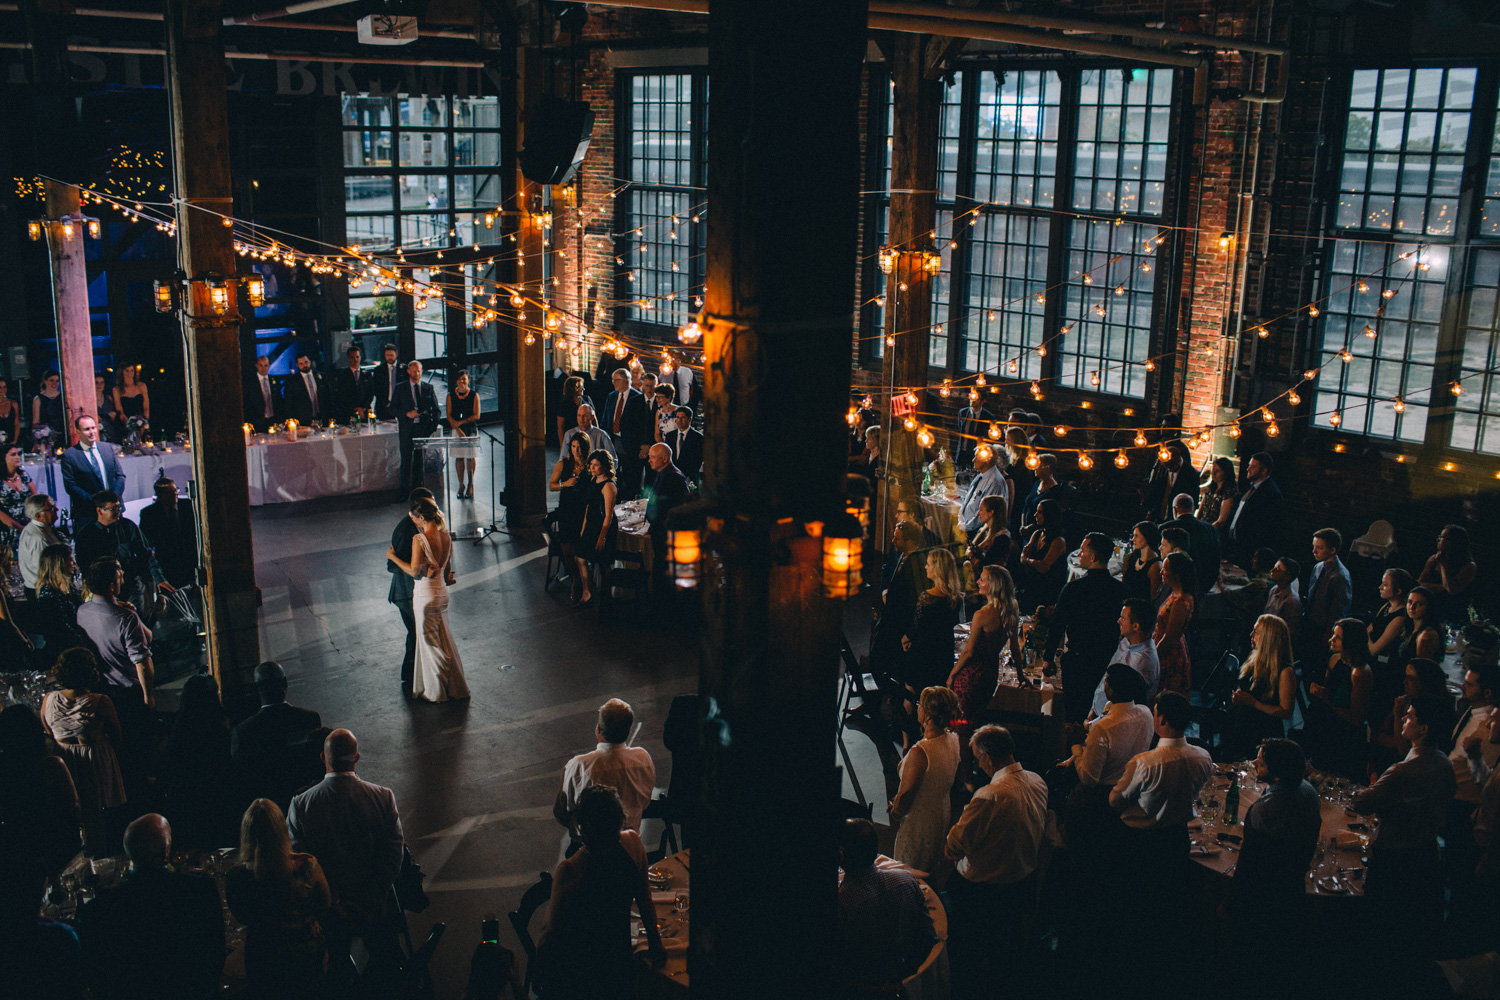 Steam-Whistle-Brewery-wedding-photos-Toronto-wedding-photography-by-Sam-Wong-of-Artanis-Collective_01052.jpg